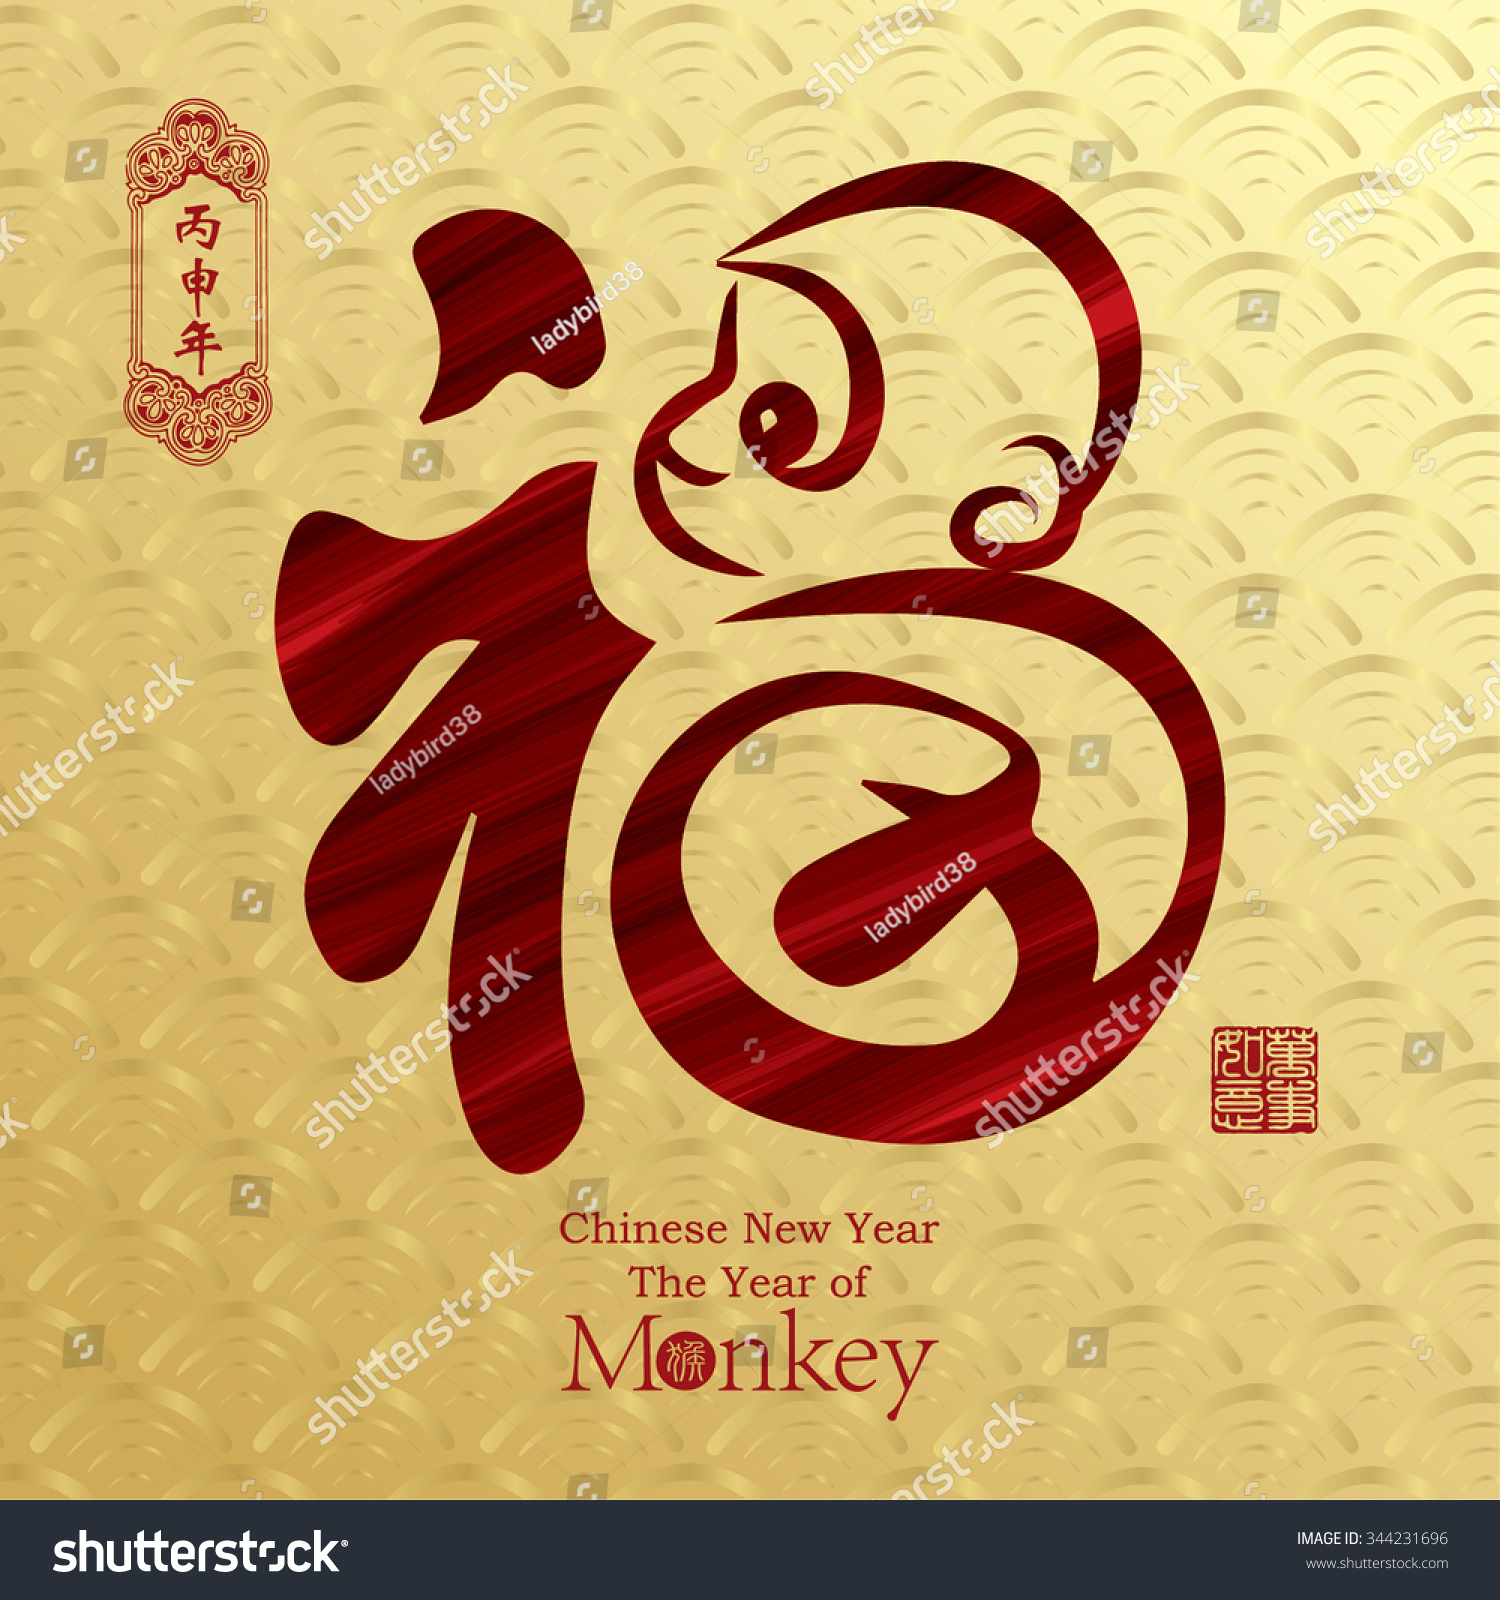 2016 Lunar New Year Greeting Card Stock Vector 344231696 ...